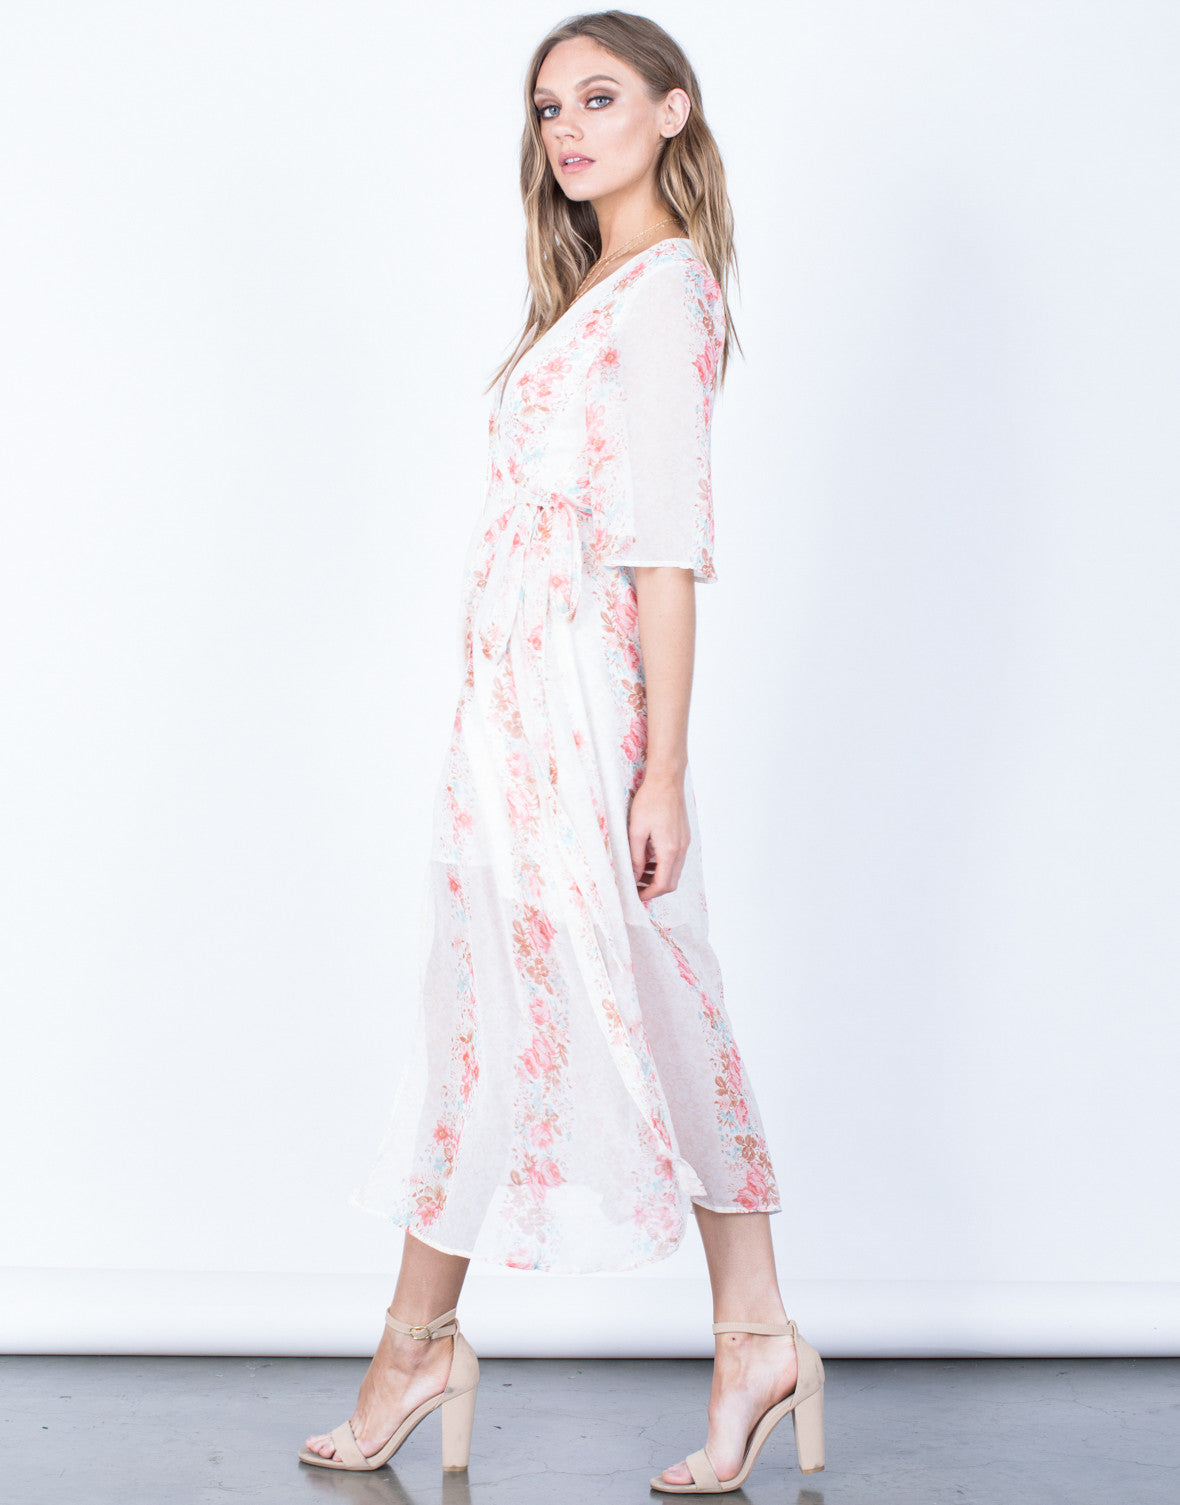 Side View of Dreamy Floral Dress